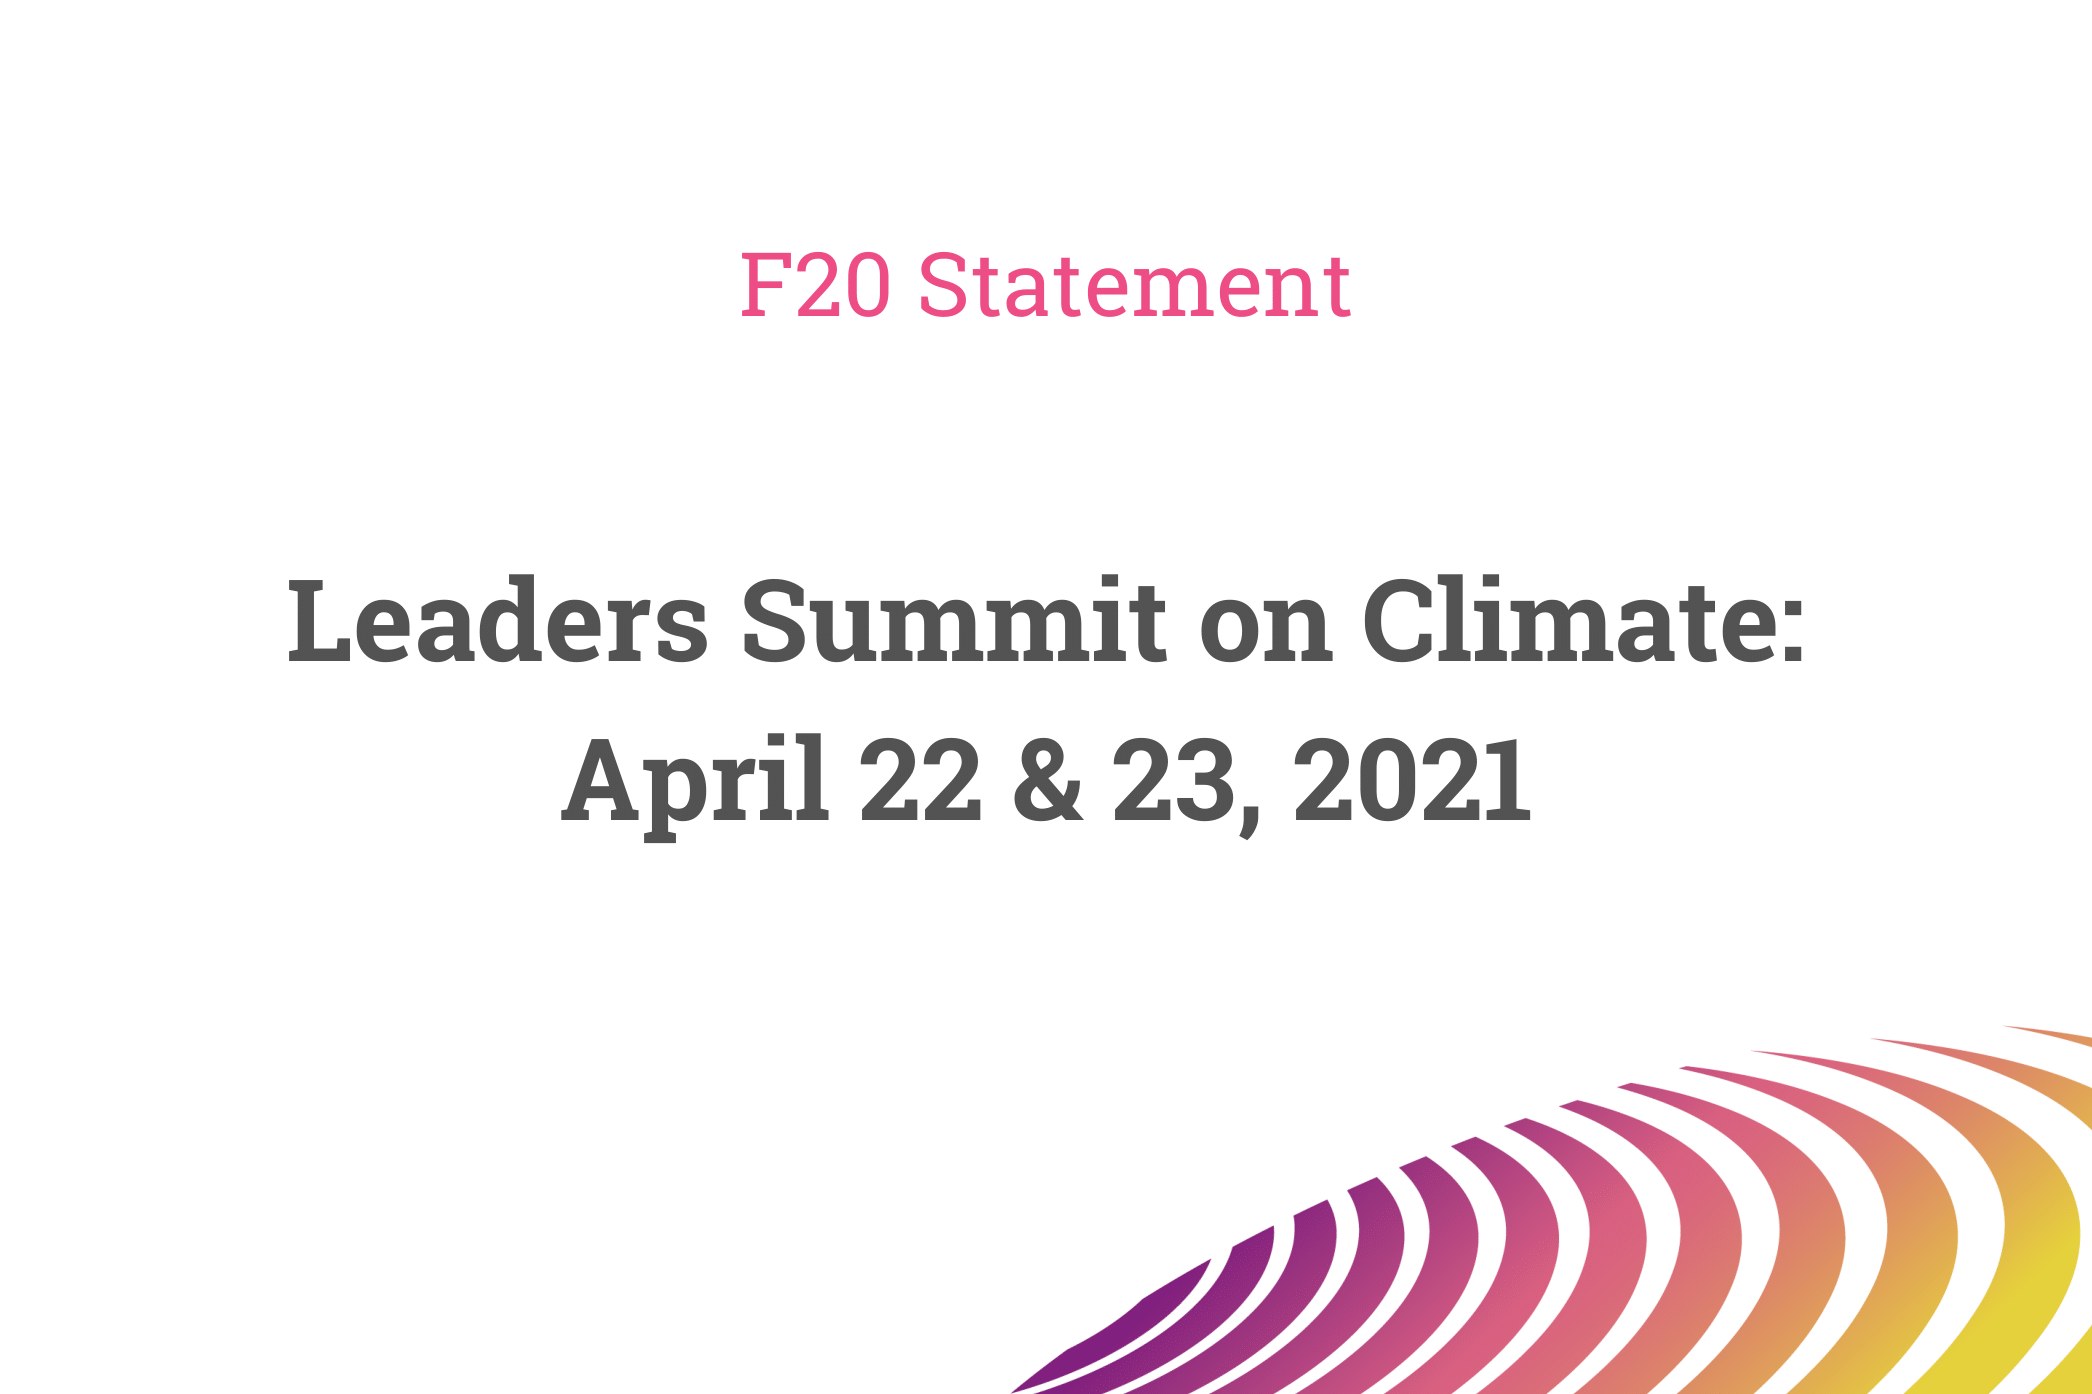 F20 Statement on the Leaders Summit on Climate